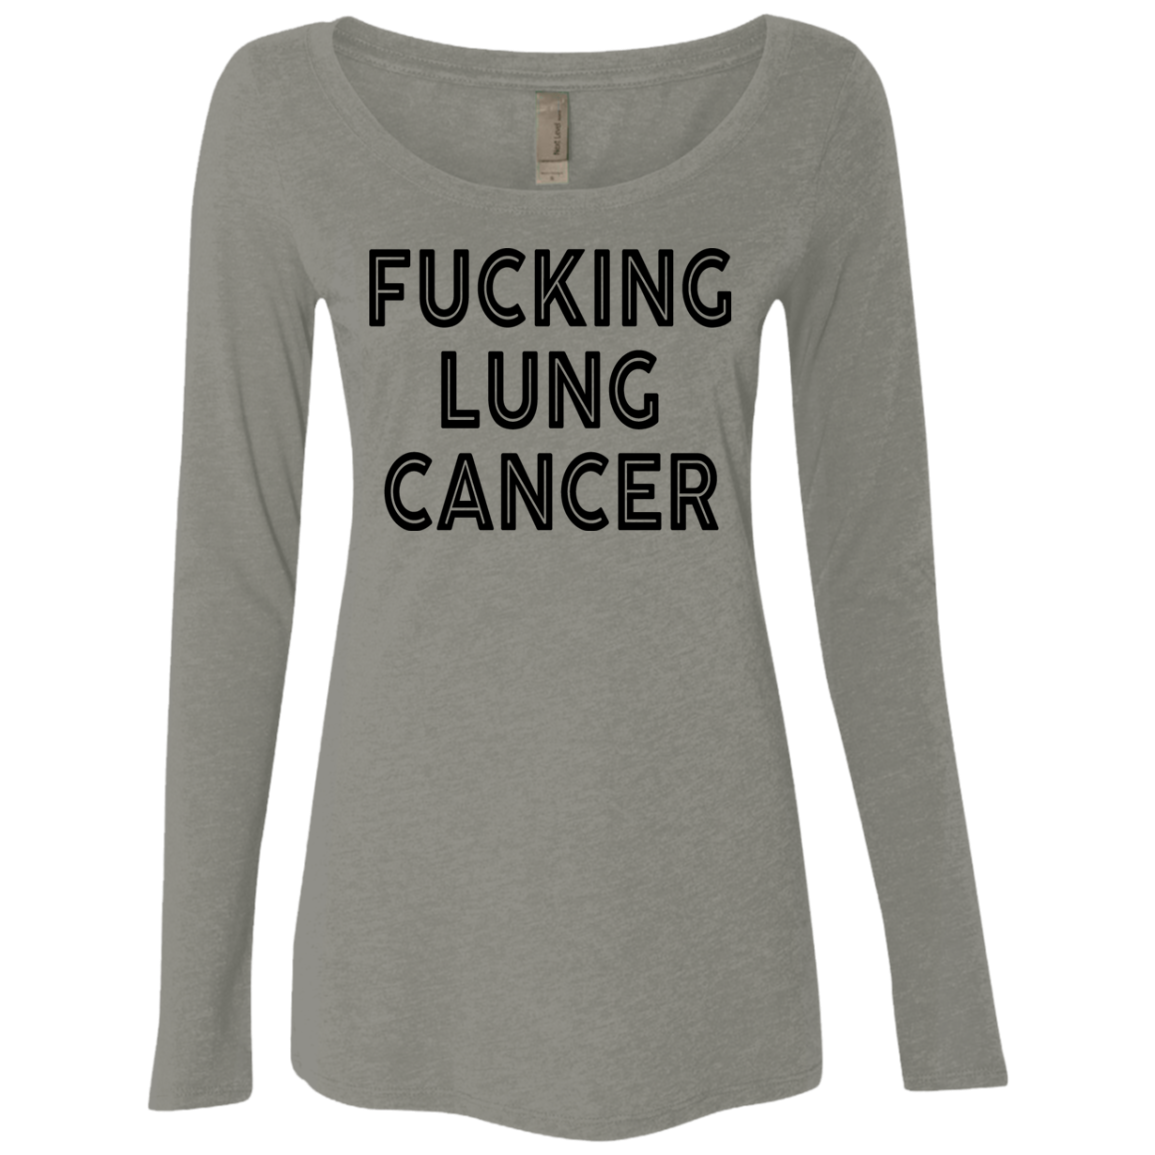 Fucking Lung Cancer Women's Long Sleeve Tee